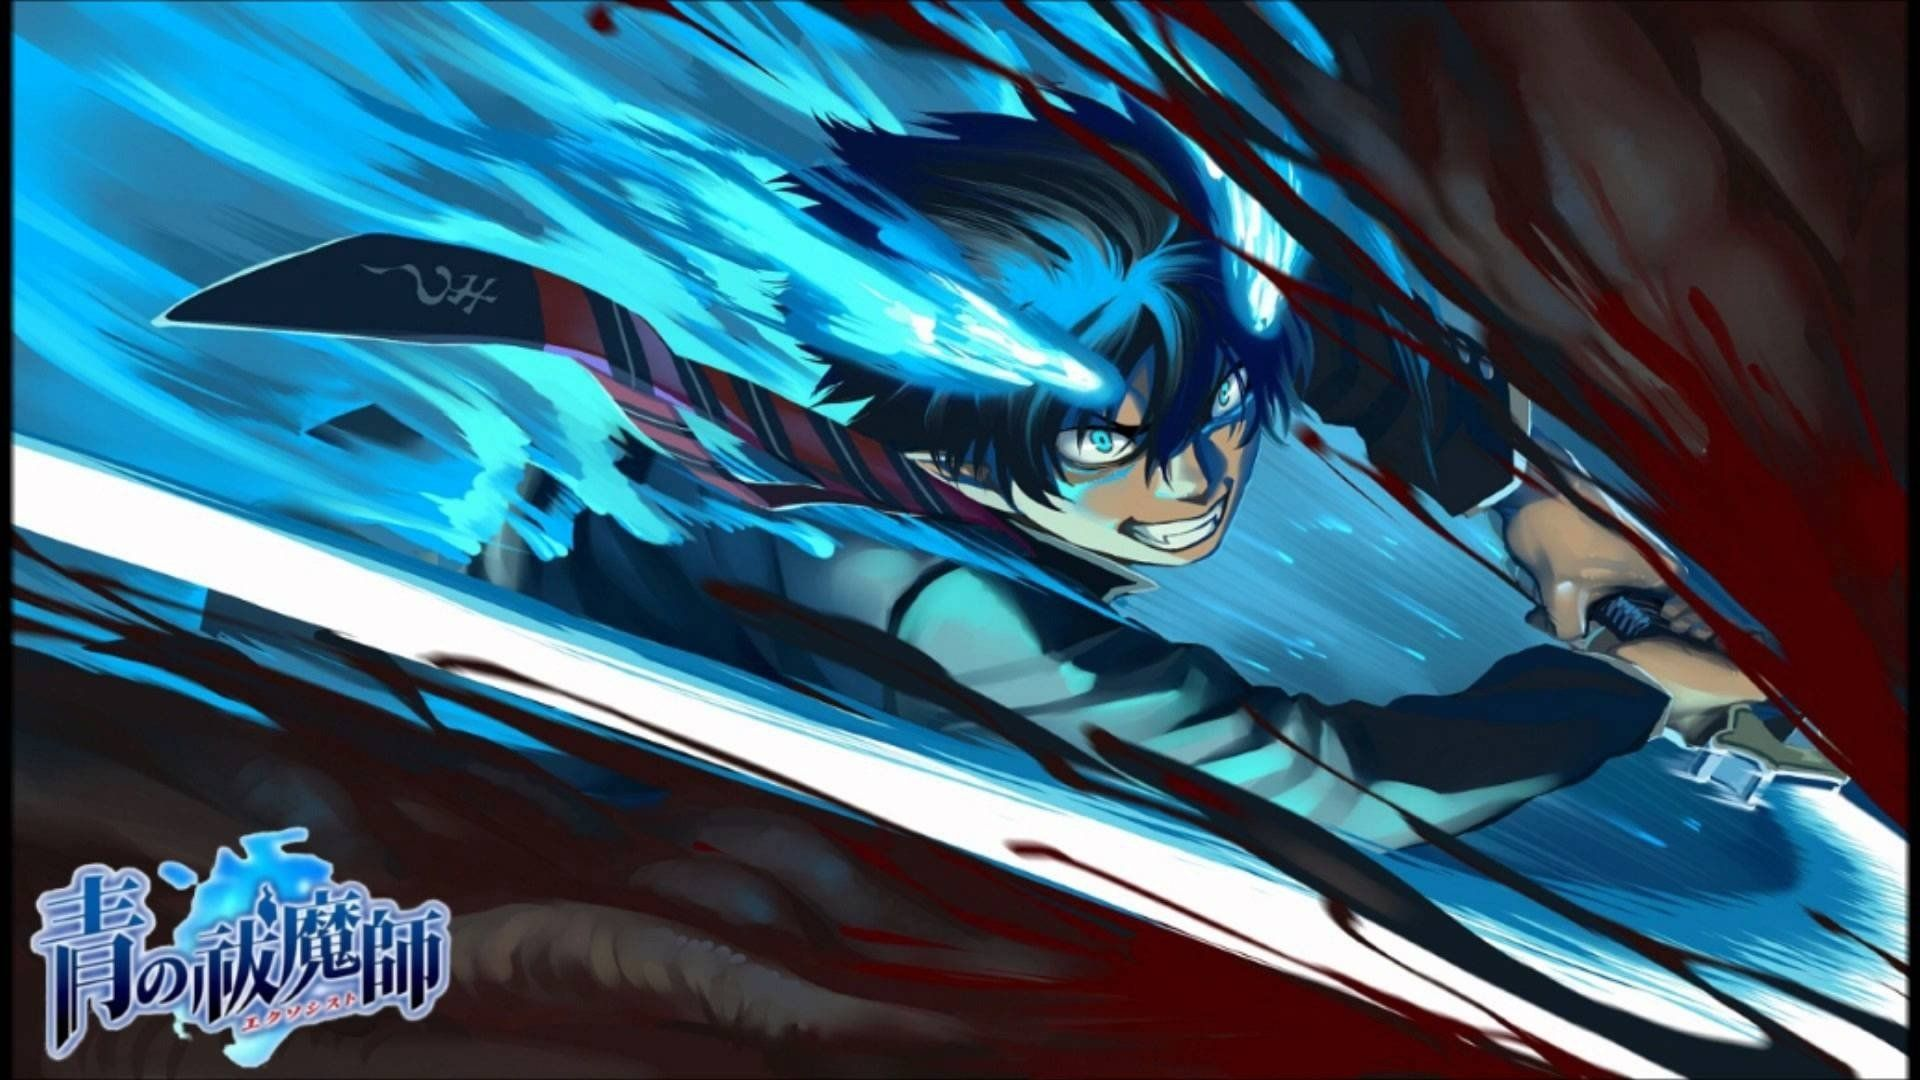 1920x1080 Rin Okumura Wallpaper Background Image View Download Comment And Rate Wallpaper Abyss Blue Exorcist Anime Blue Exorcist Rin Anime Download wallpaper anime ao no